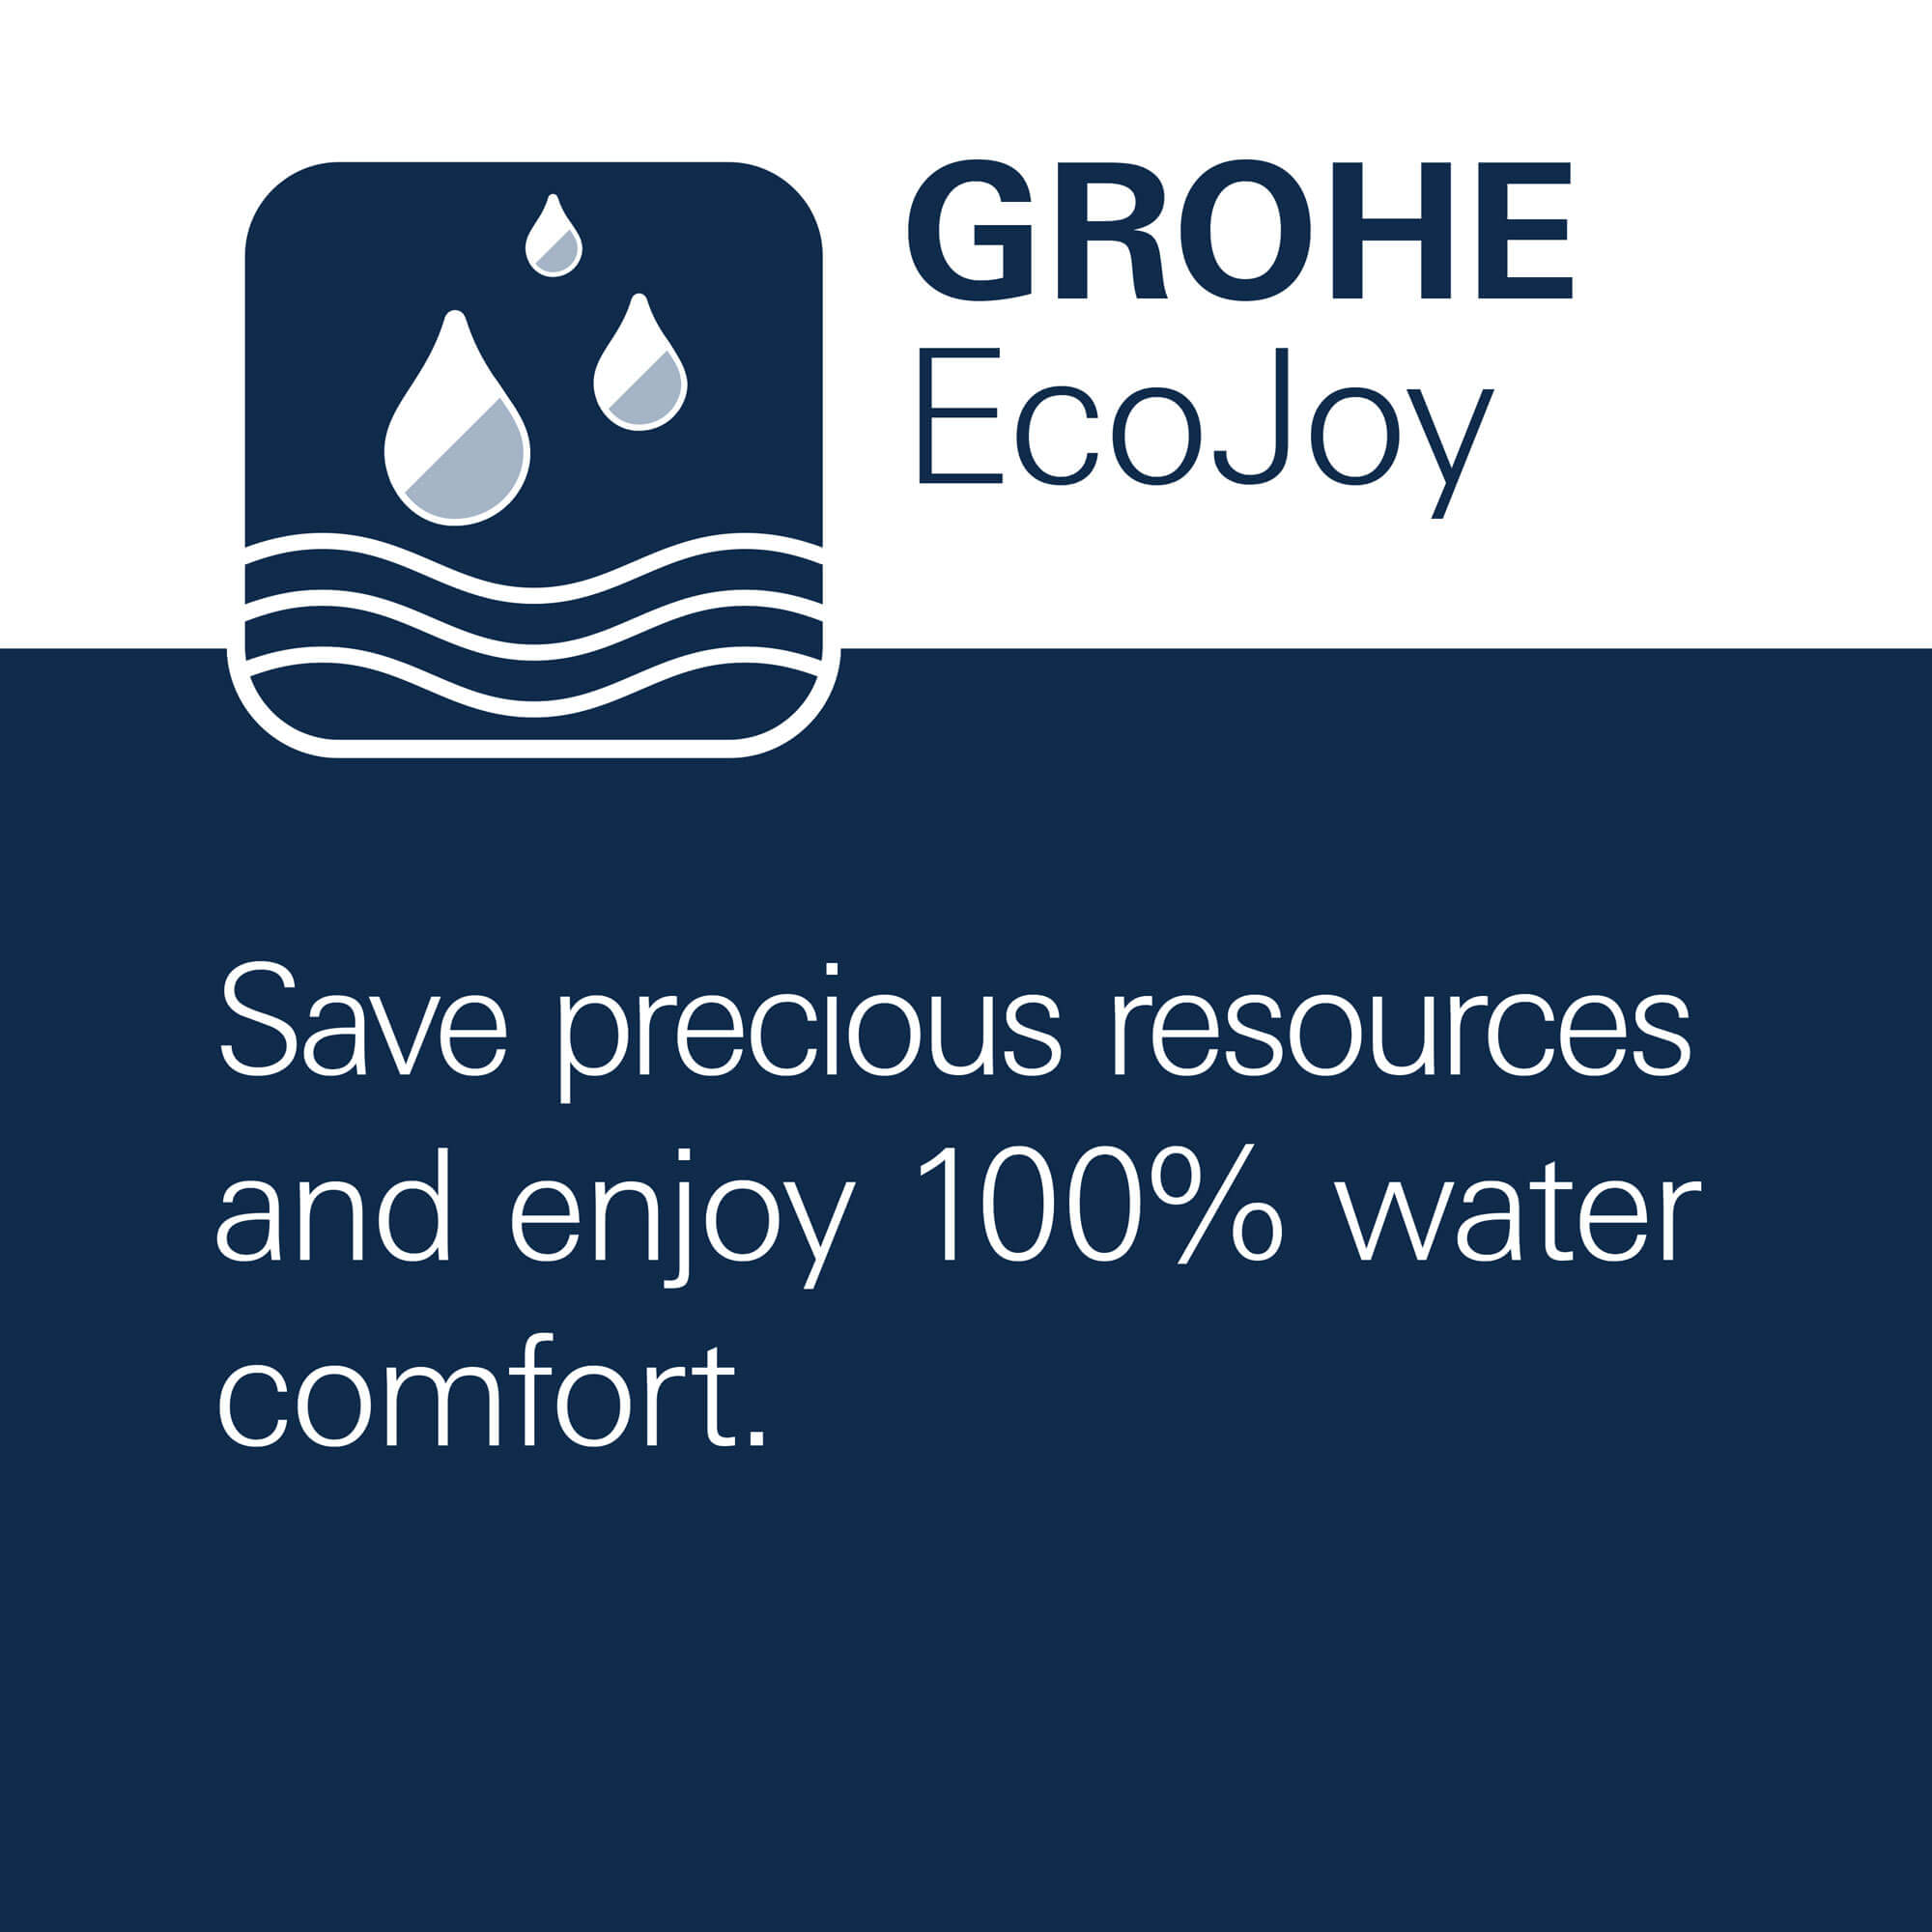 GROHE EcoJoy - Save precious resources and enjoy 100% water comfort.